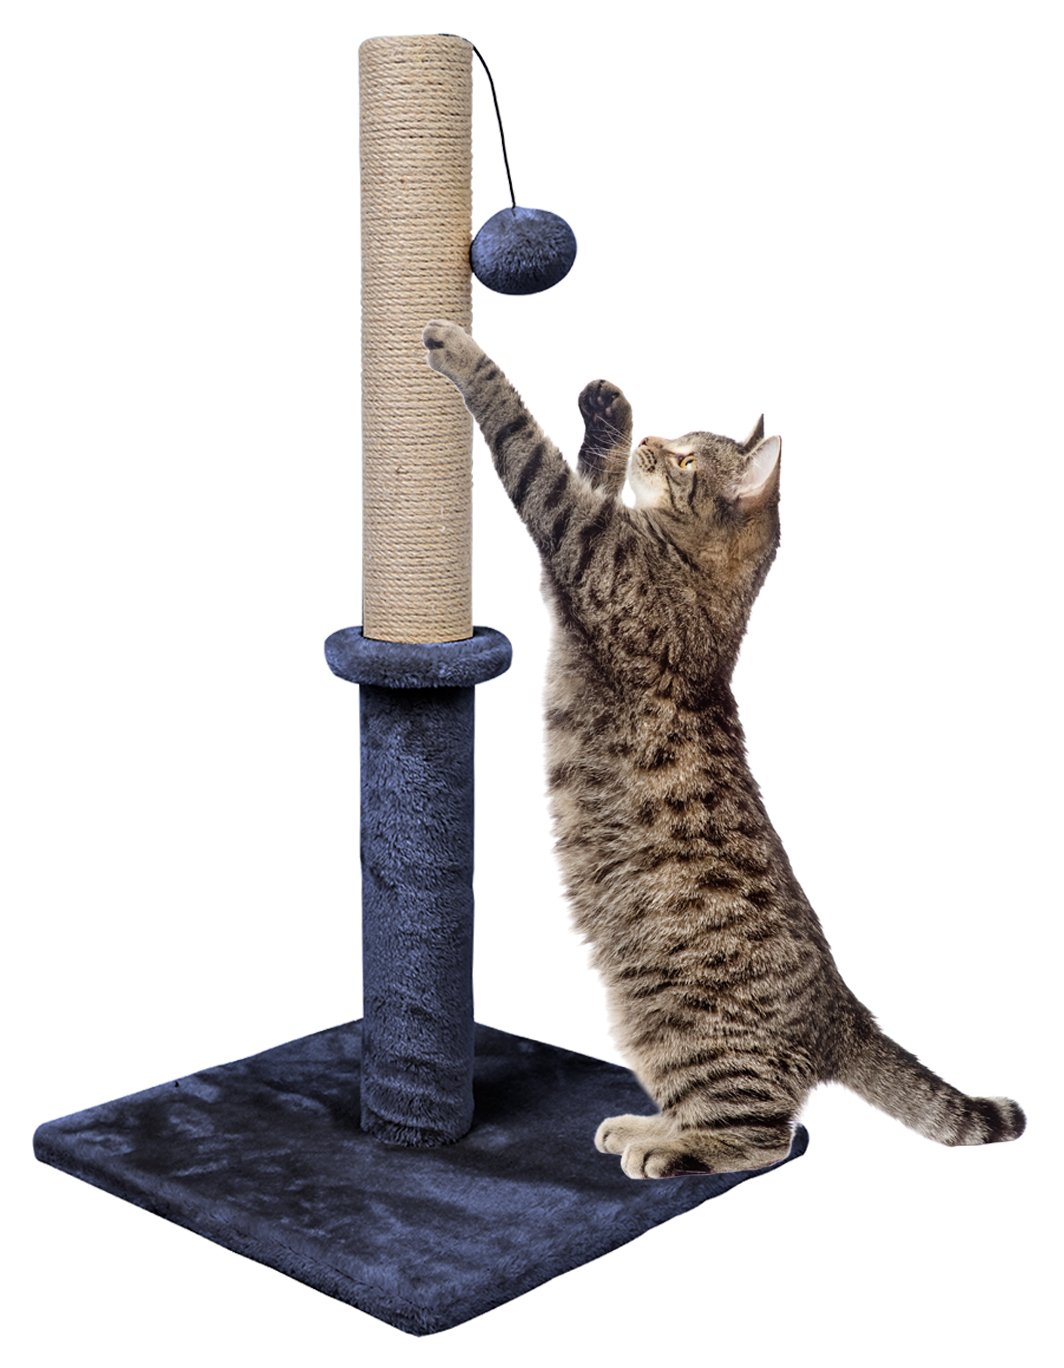 Dimaka 29 Tall Cat Scratching Post Claw Scratcher with Sisal Rope and Covered with Soft Smooth Plush